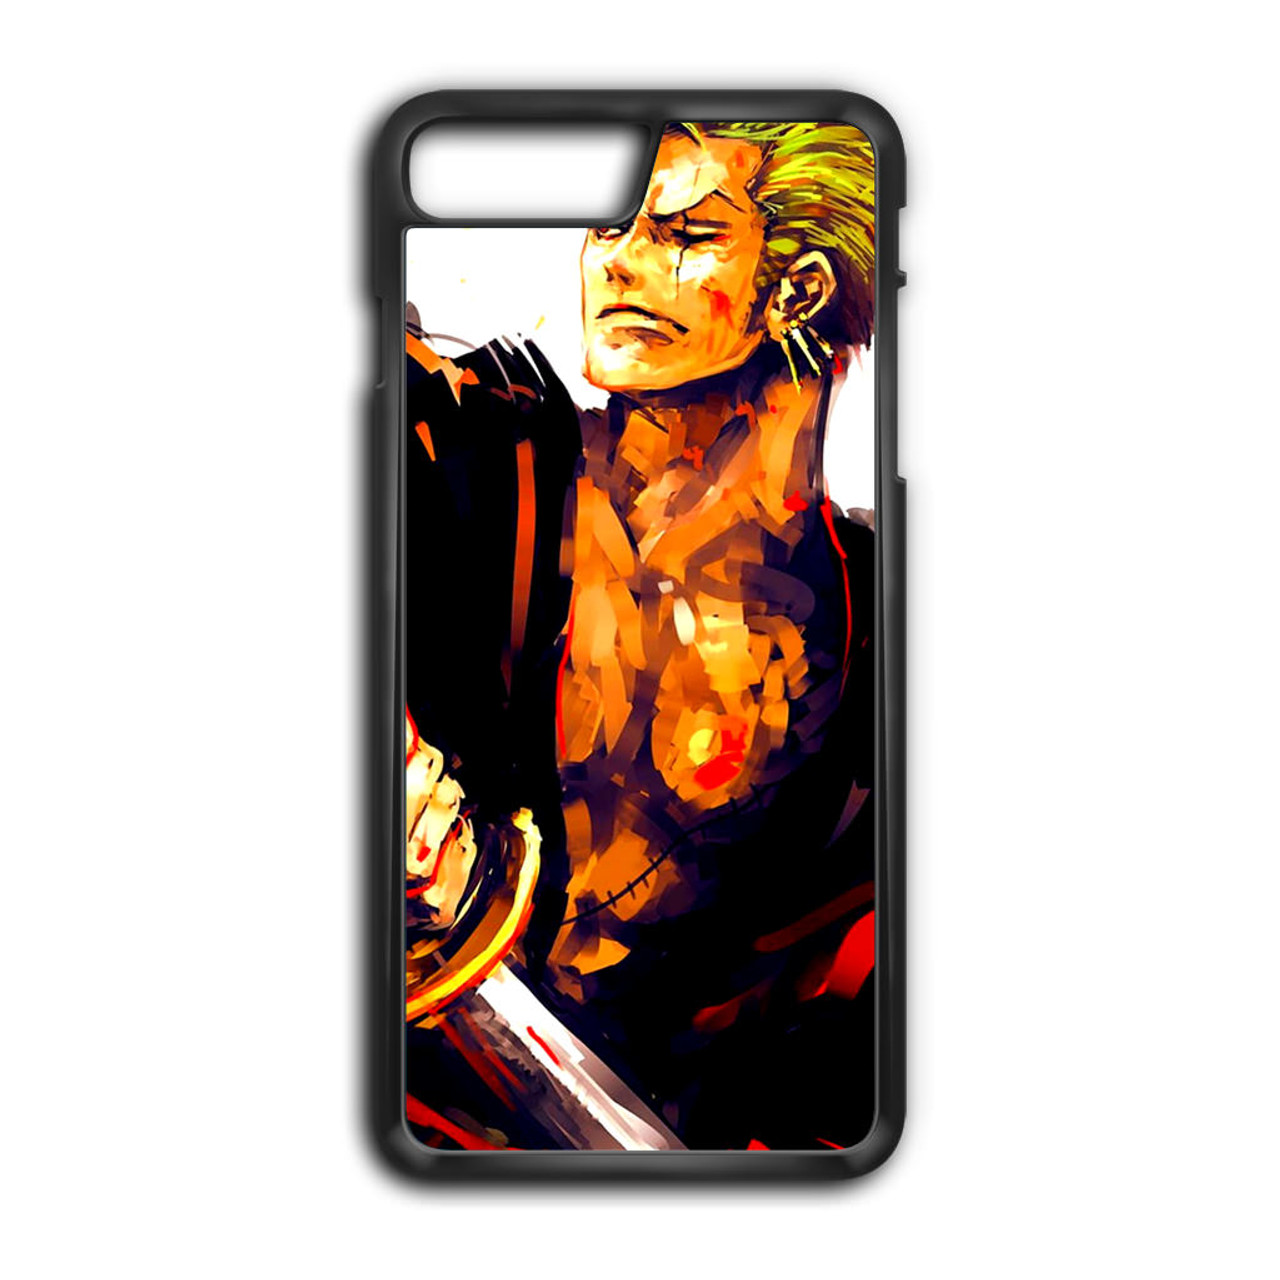 zoro iphone 7 case